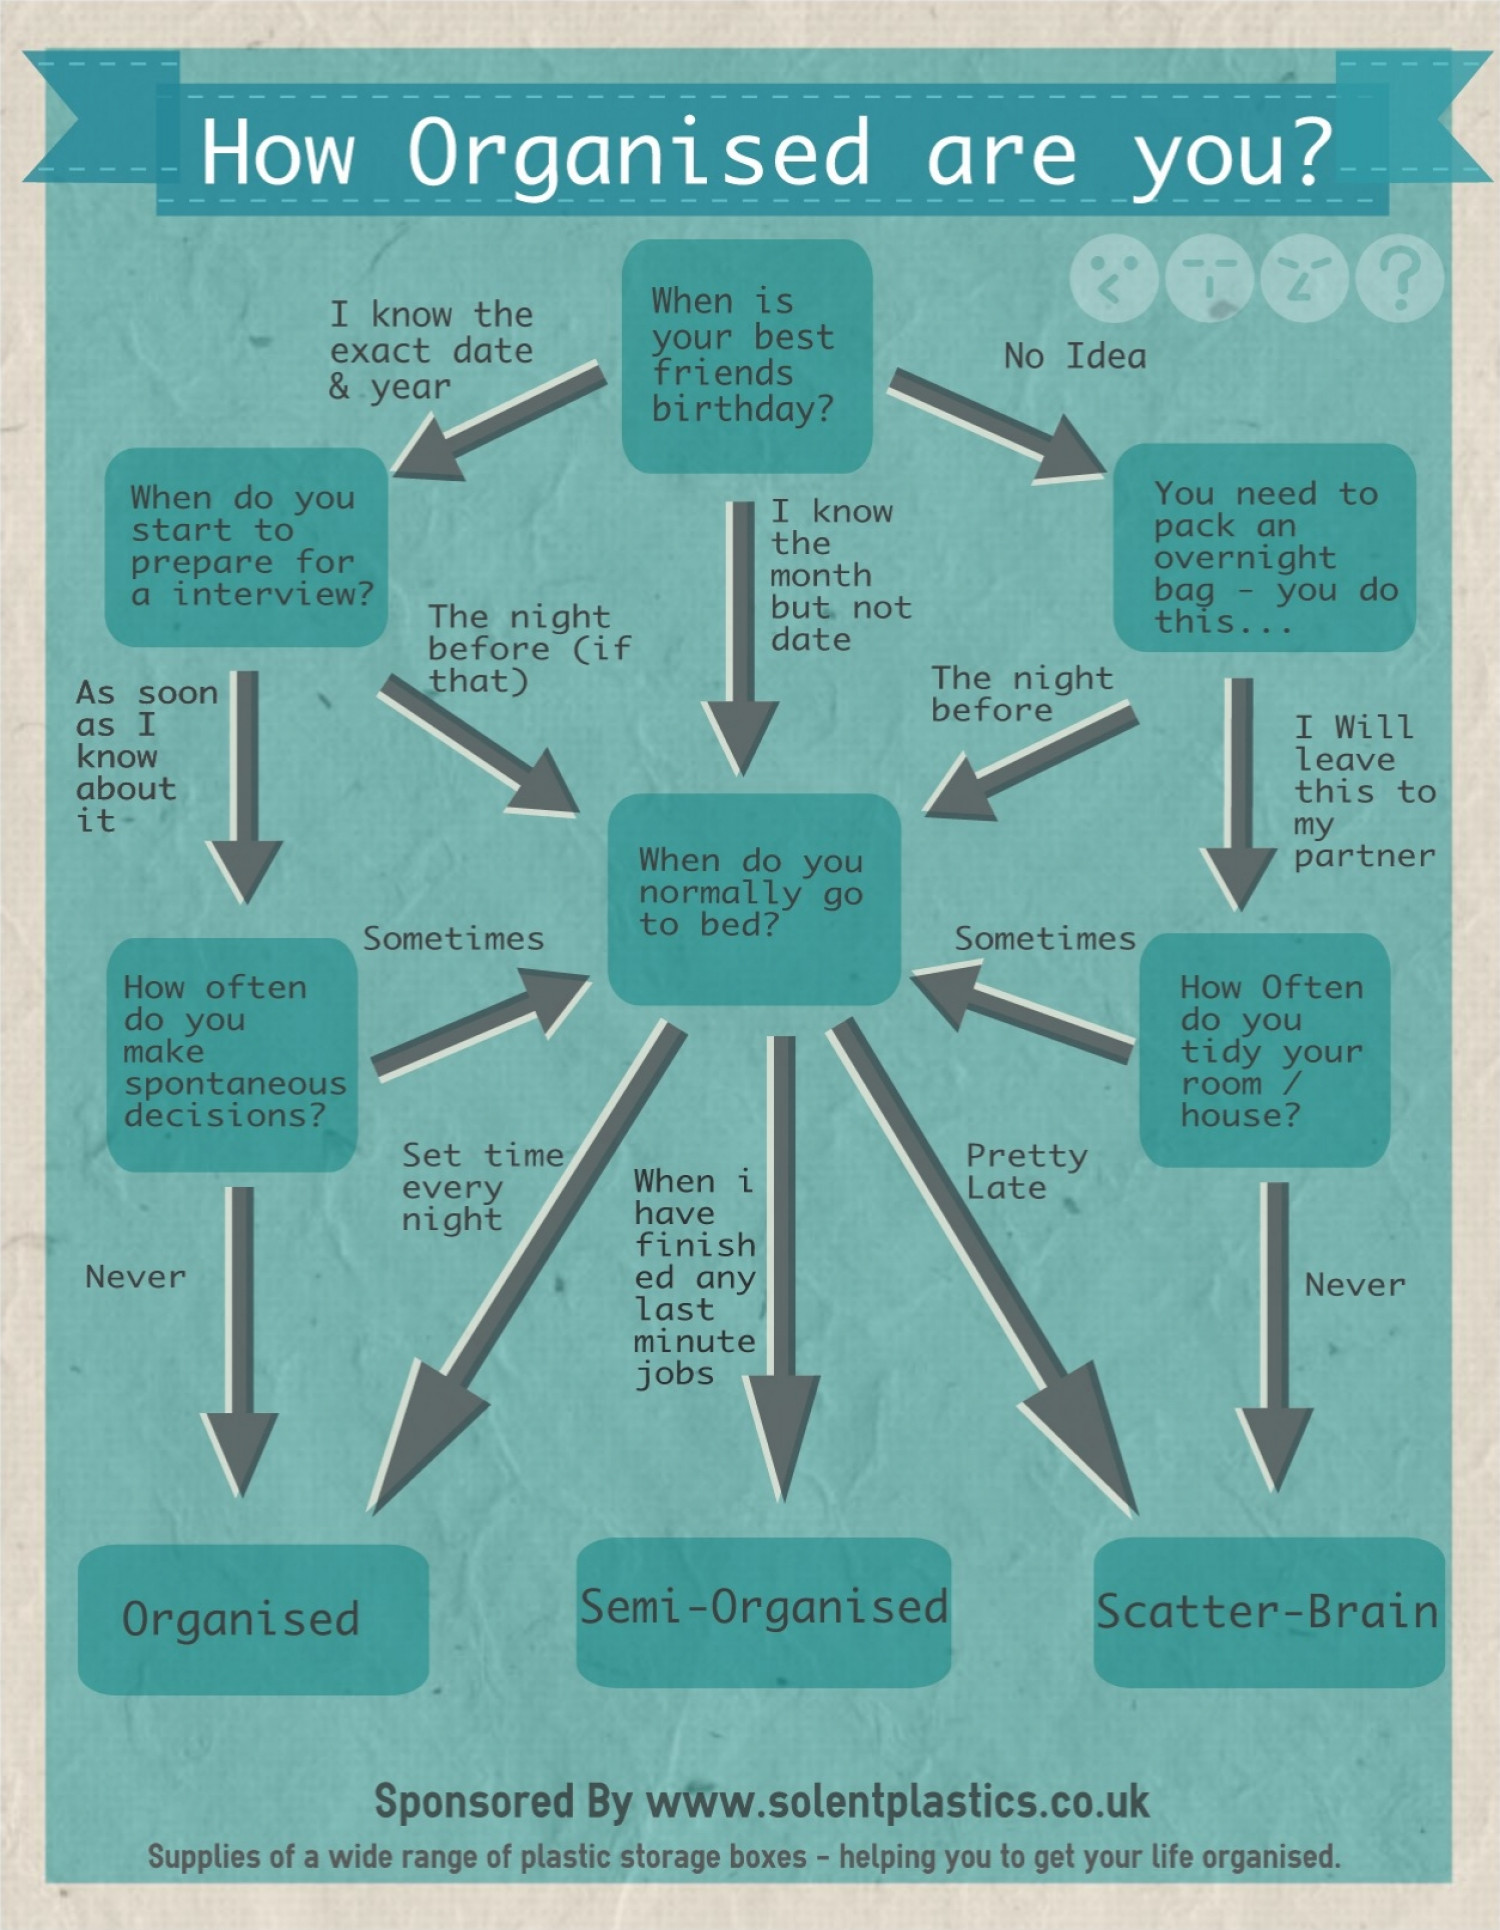 How Organised are you? Infographic